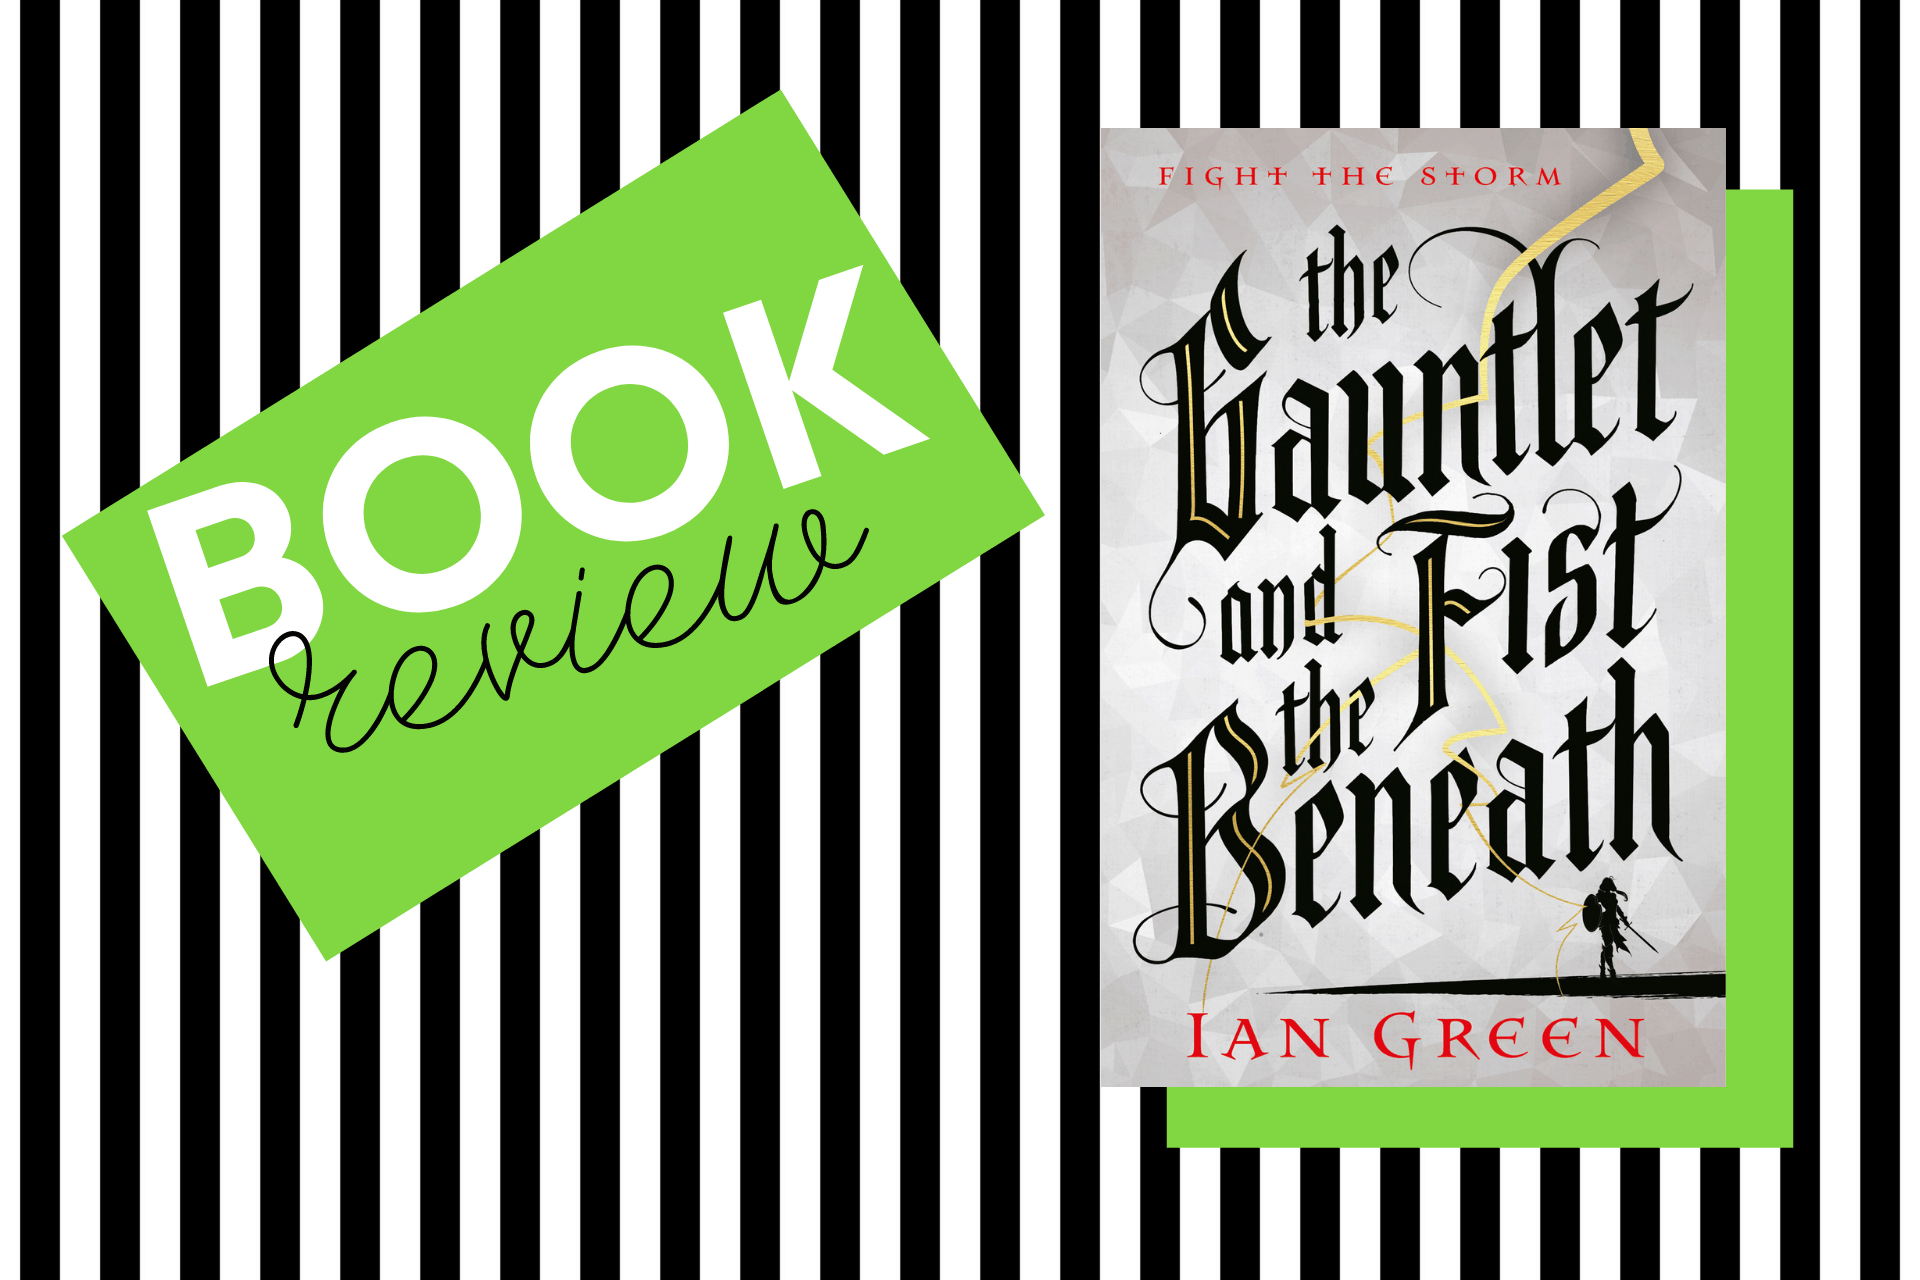 The cover of The Gauntlet and the Fist Beneath by Ian Green